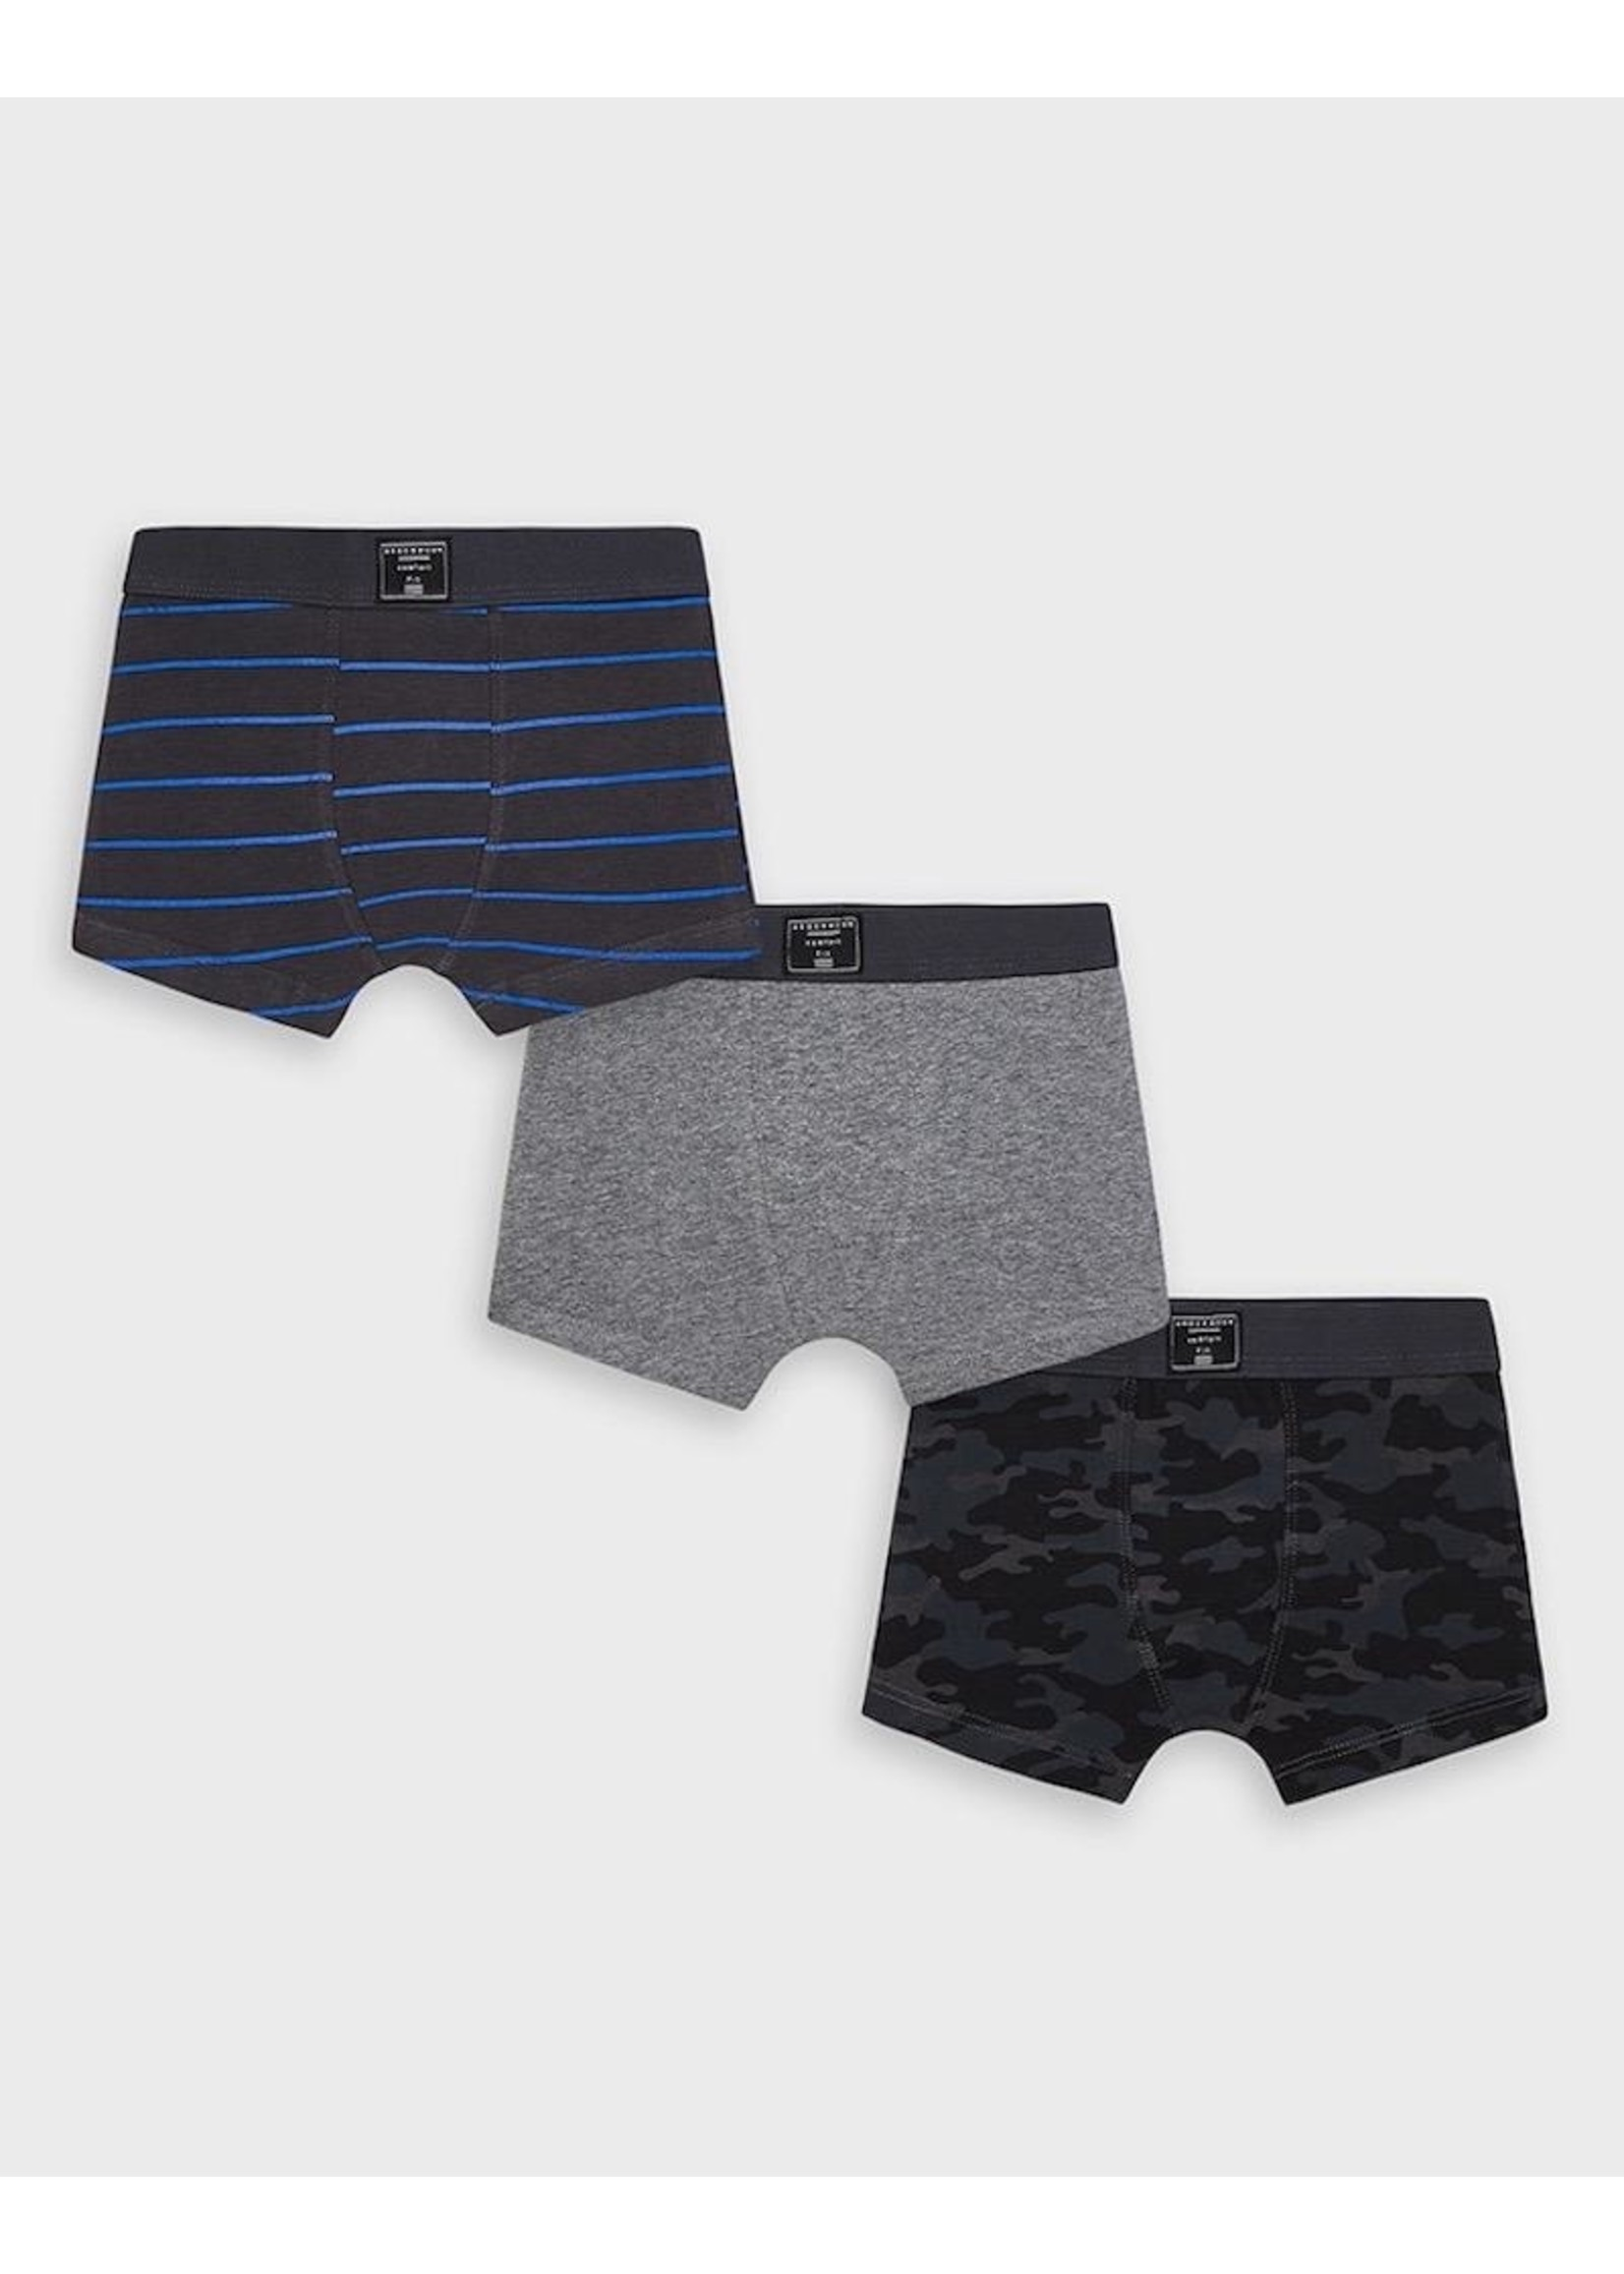 Mayoral Mayoral, 3 piece Boxers Set in Coal